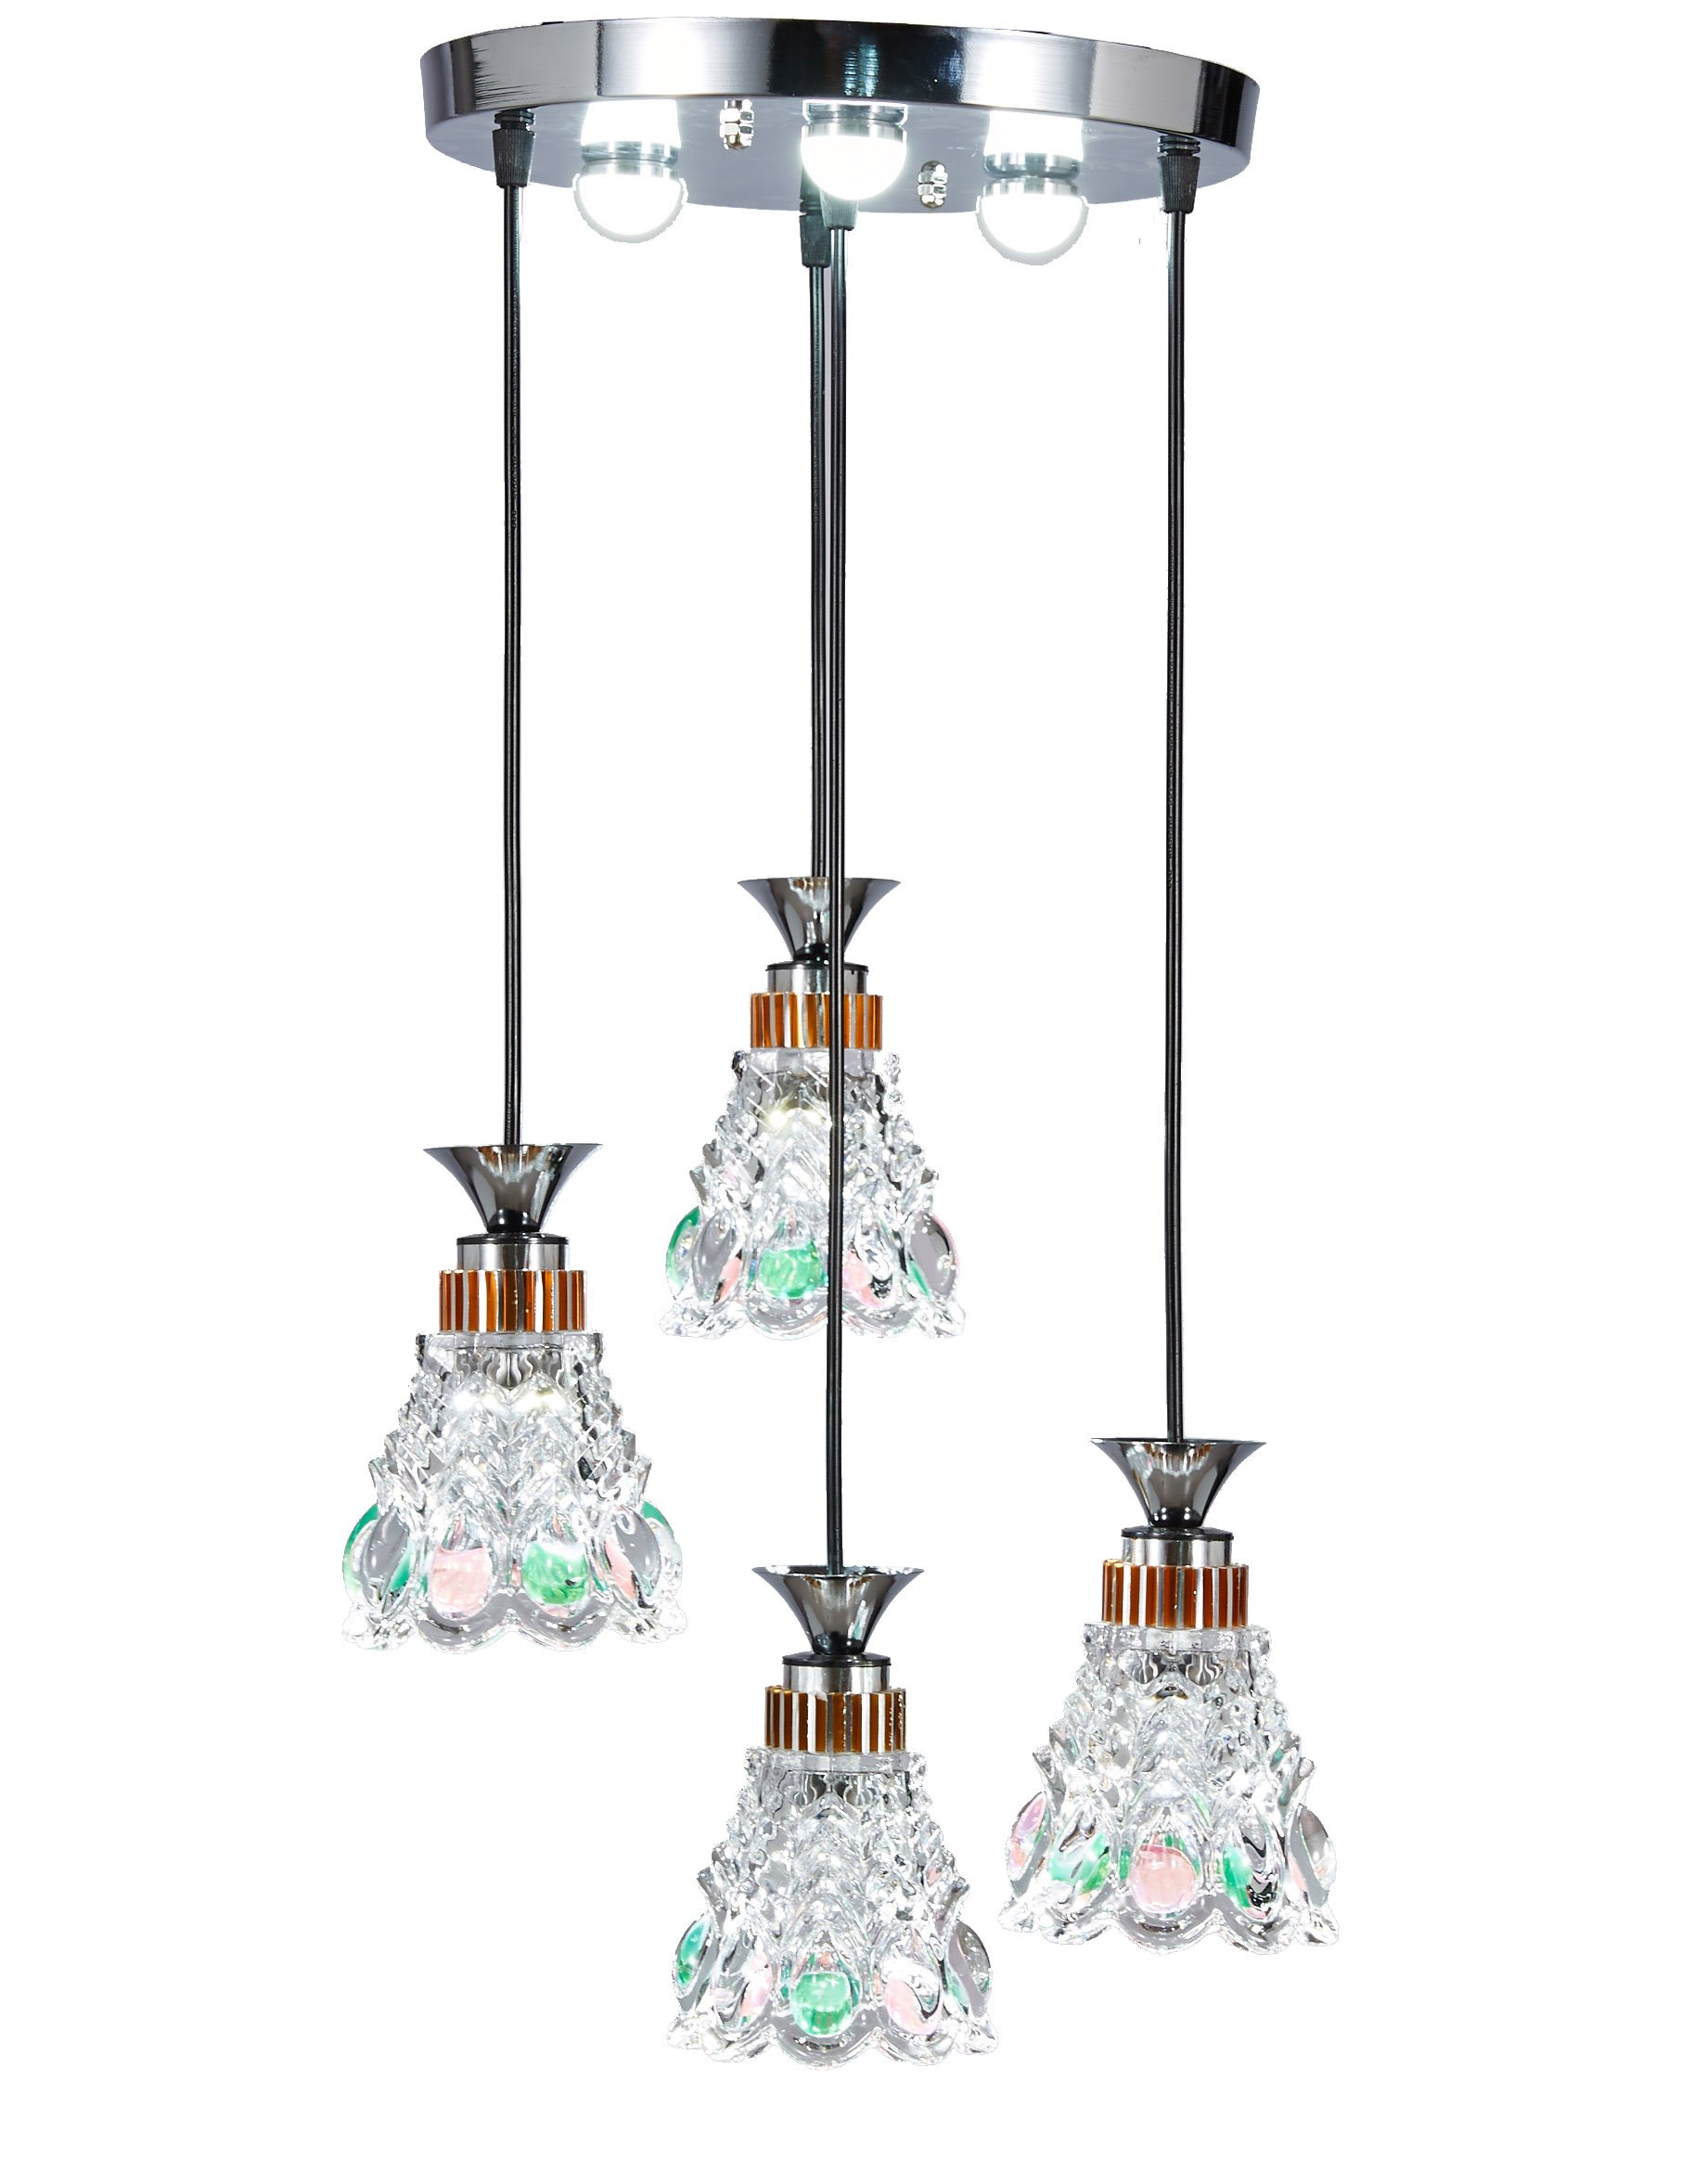 New Galaxy Lighting Modern LED Chandelier Chrome Finish Glass Shade 4-Light Hanging Pendant Ceiling Lamp Fixture, Bulbs Included